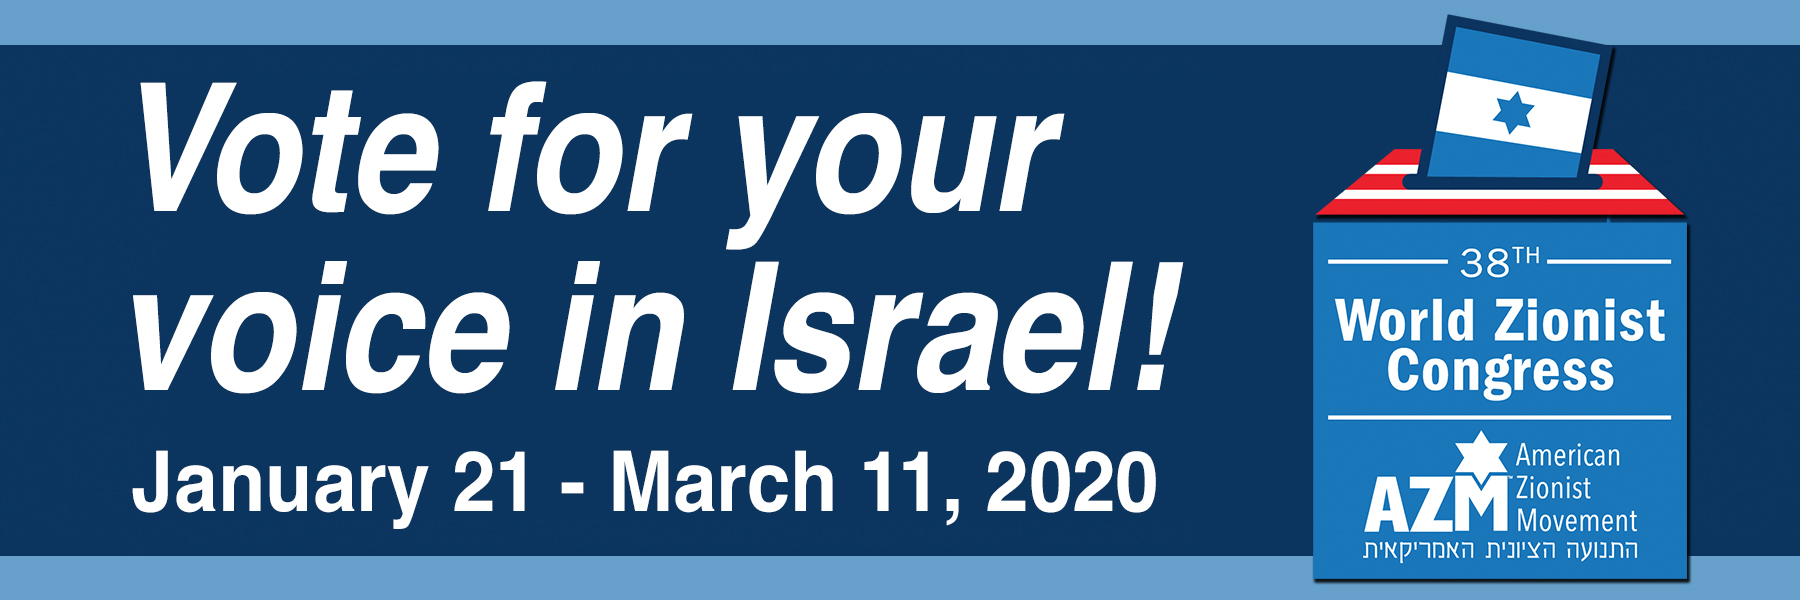 """<a href=""""https://azm.org/elections""""                                     target=""""_blank"""">                                                                 <span class=""""slider_title"""">                                     Vote and Make Your Reform Jewish Voice Heard                                </span>                                                                 </a>                                                                                                                                                                                       <span class=""""slider_description"""">Voting in this election is a significant way to make our voices heard in Israel!  Each and every vote from our congregation – our members – is crucial to maintaining a strong Reform presence. Click above to vote, and check your email for additional information from Rabbi Steiner.</span>"""